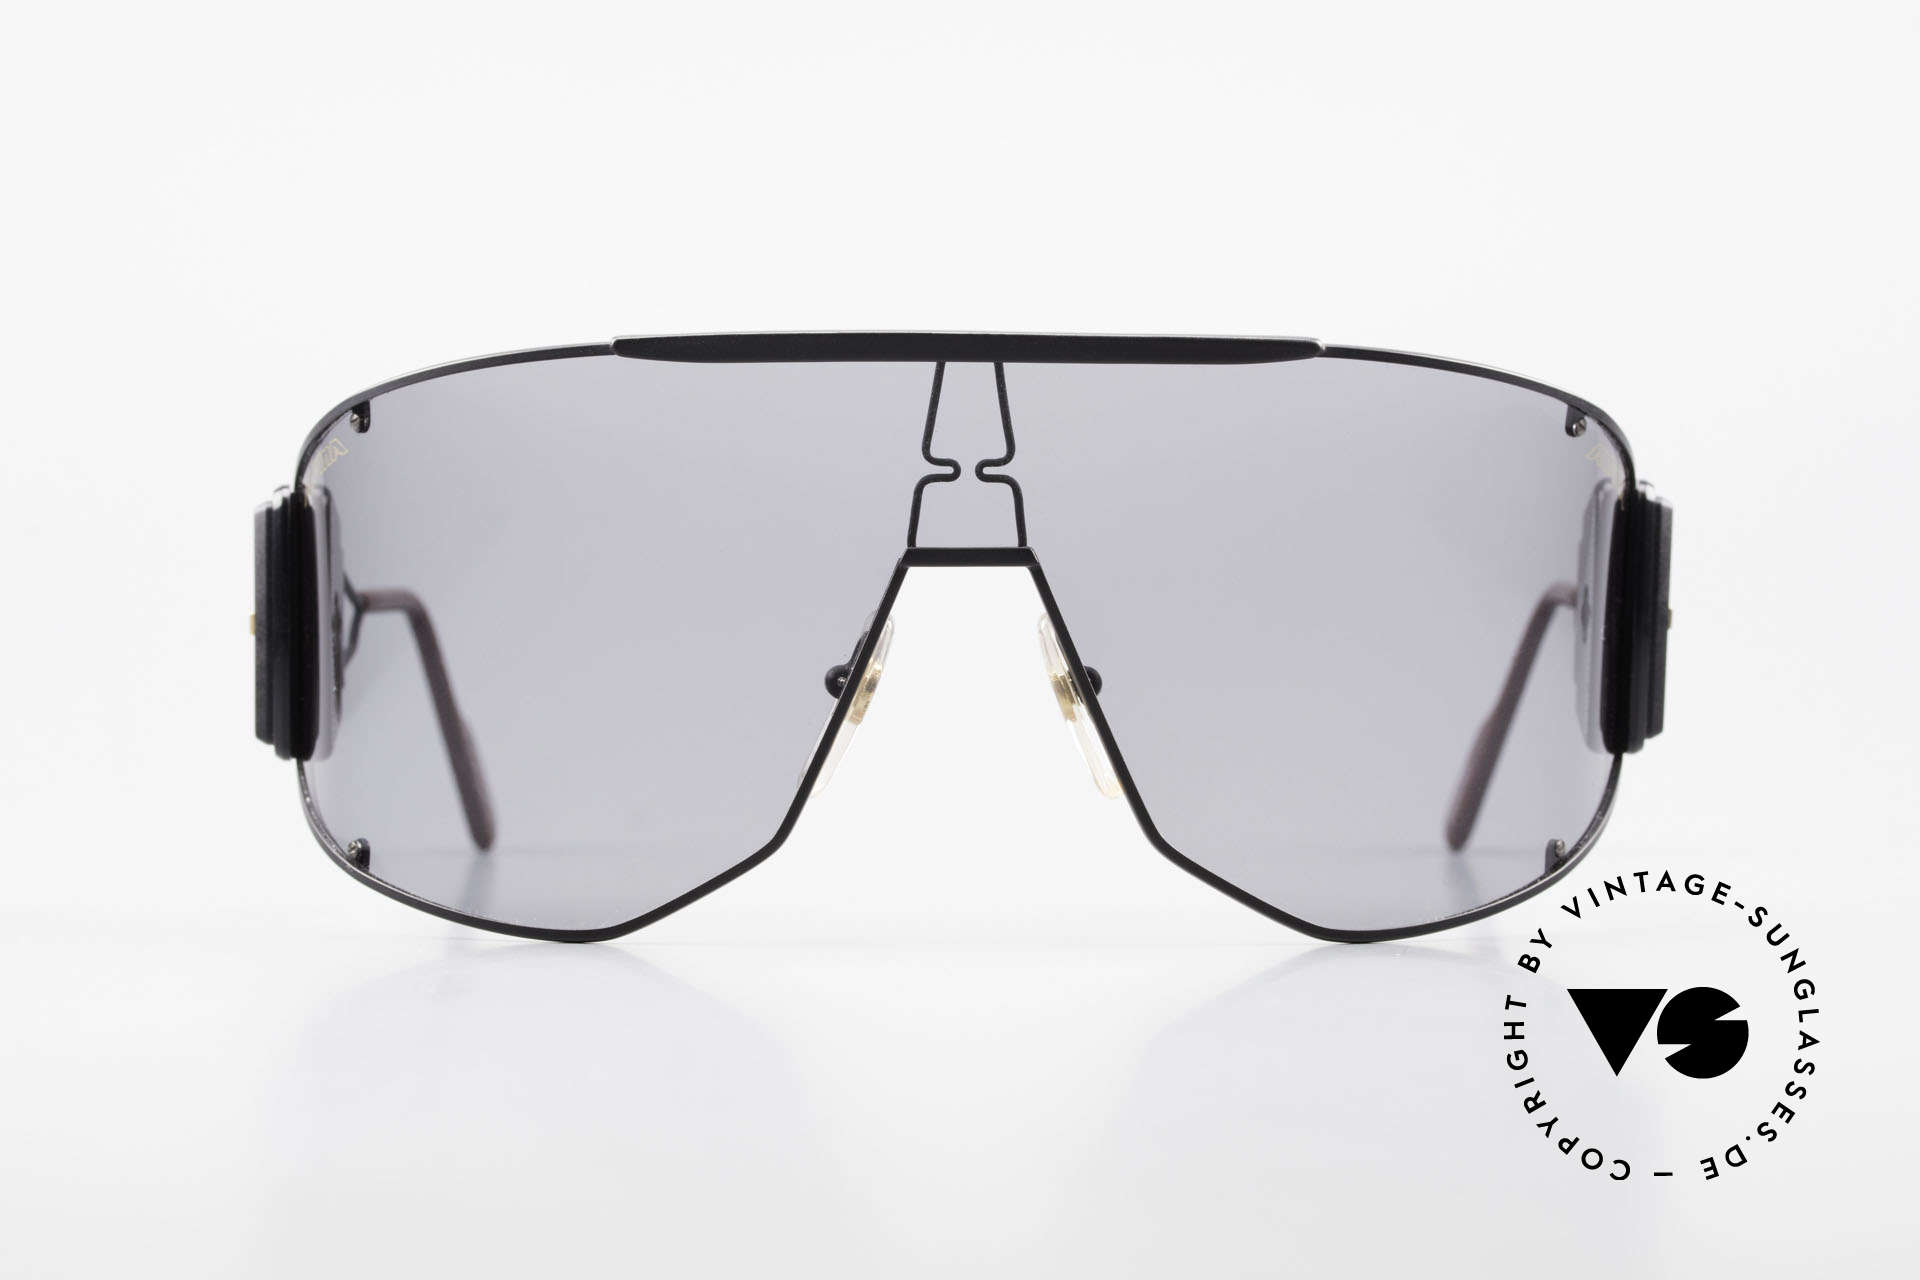 Alpina Goldwing Rare 80's Celebrity Sunglasses, worn by celebs like Kanye West, Lady Gaga, Madonna, Made for Men and Women